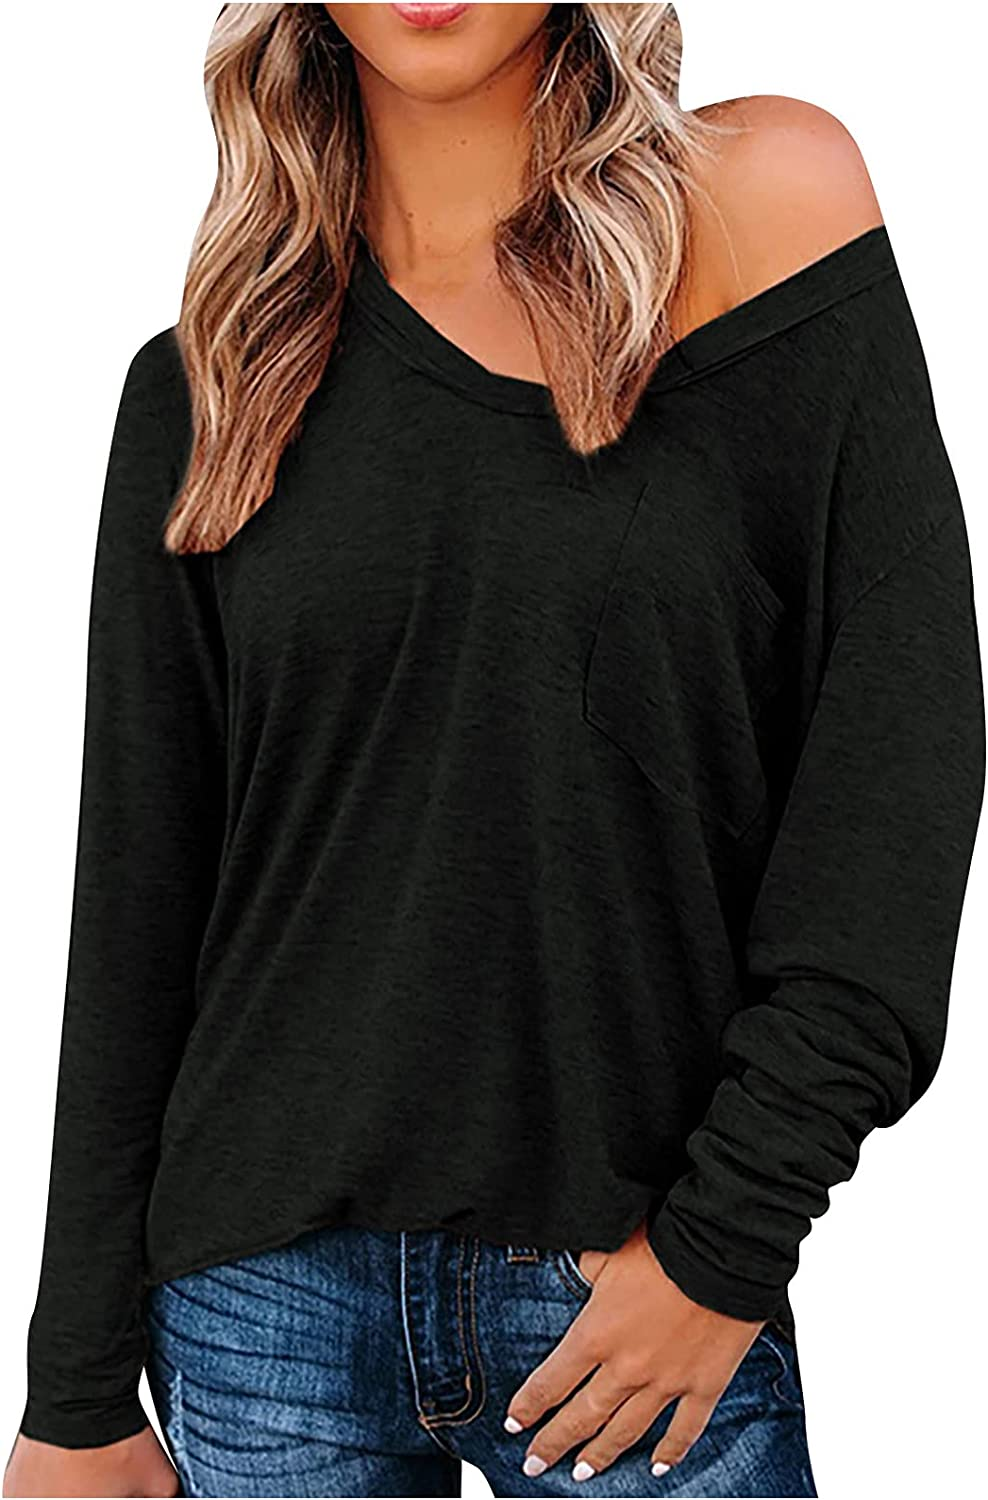 RFNIU Polo Shirts For Women Fall Casual Sexy Comfly V-Neck Pullover Tops Trendy Solid Color Long Sleeve Blouses